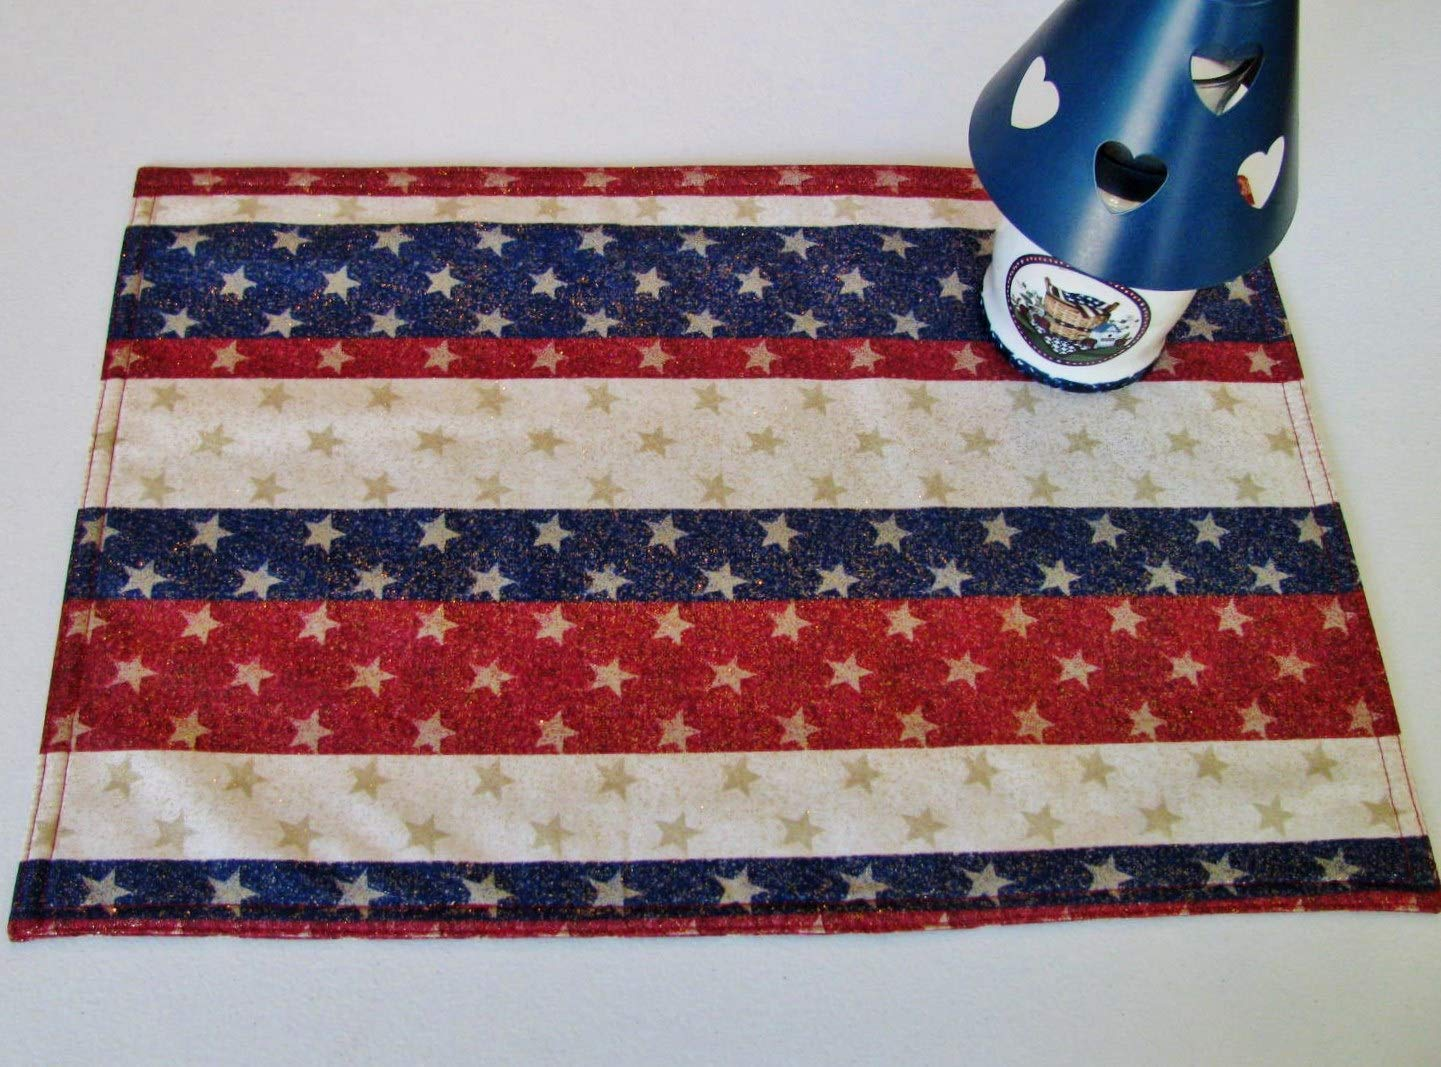 Stars Stripes Placemats Individually Bombing free shipping Max 48% OFF Priced